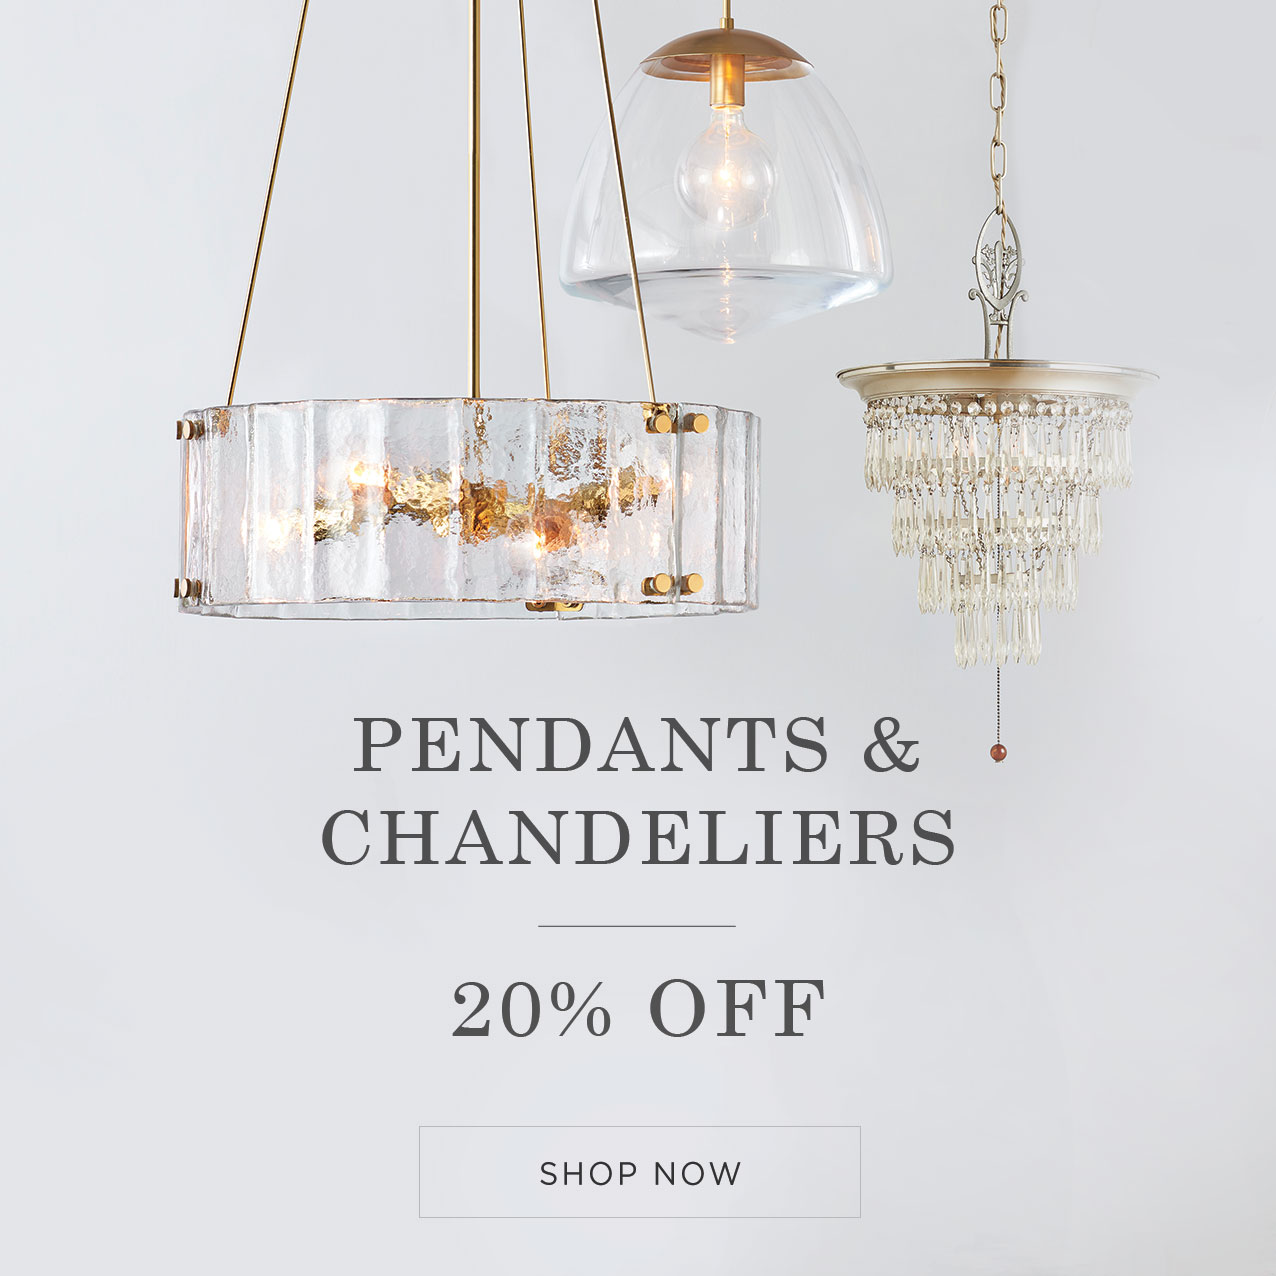 Pendants and Chandeliers Sale